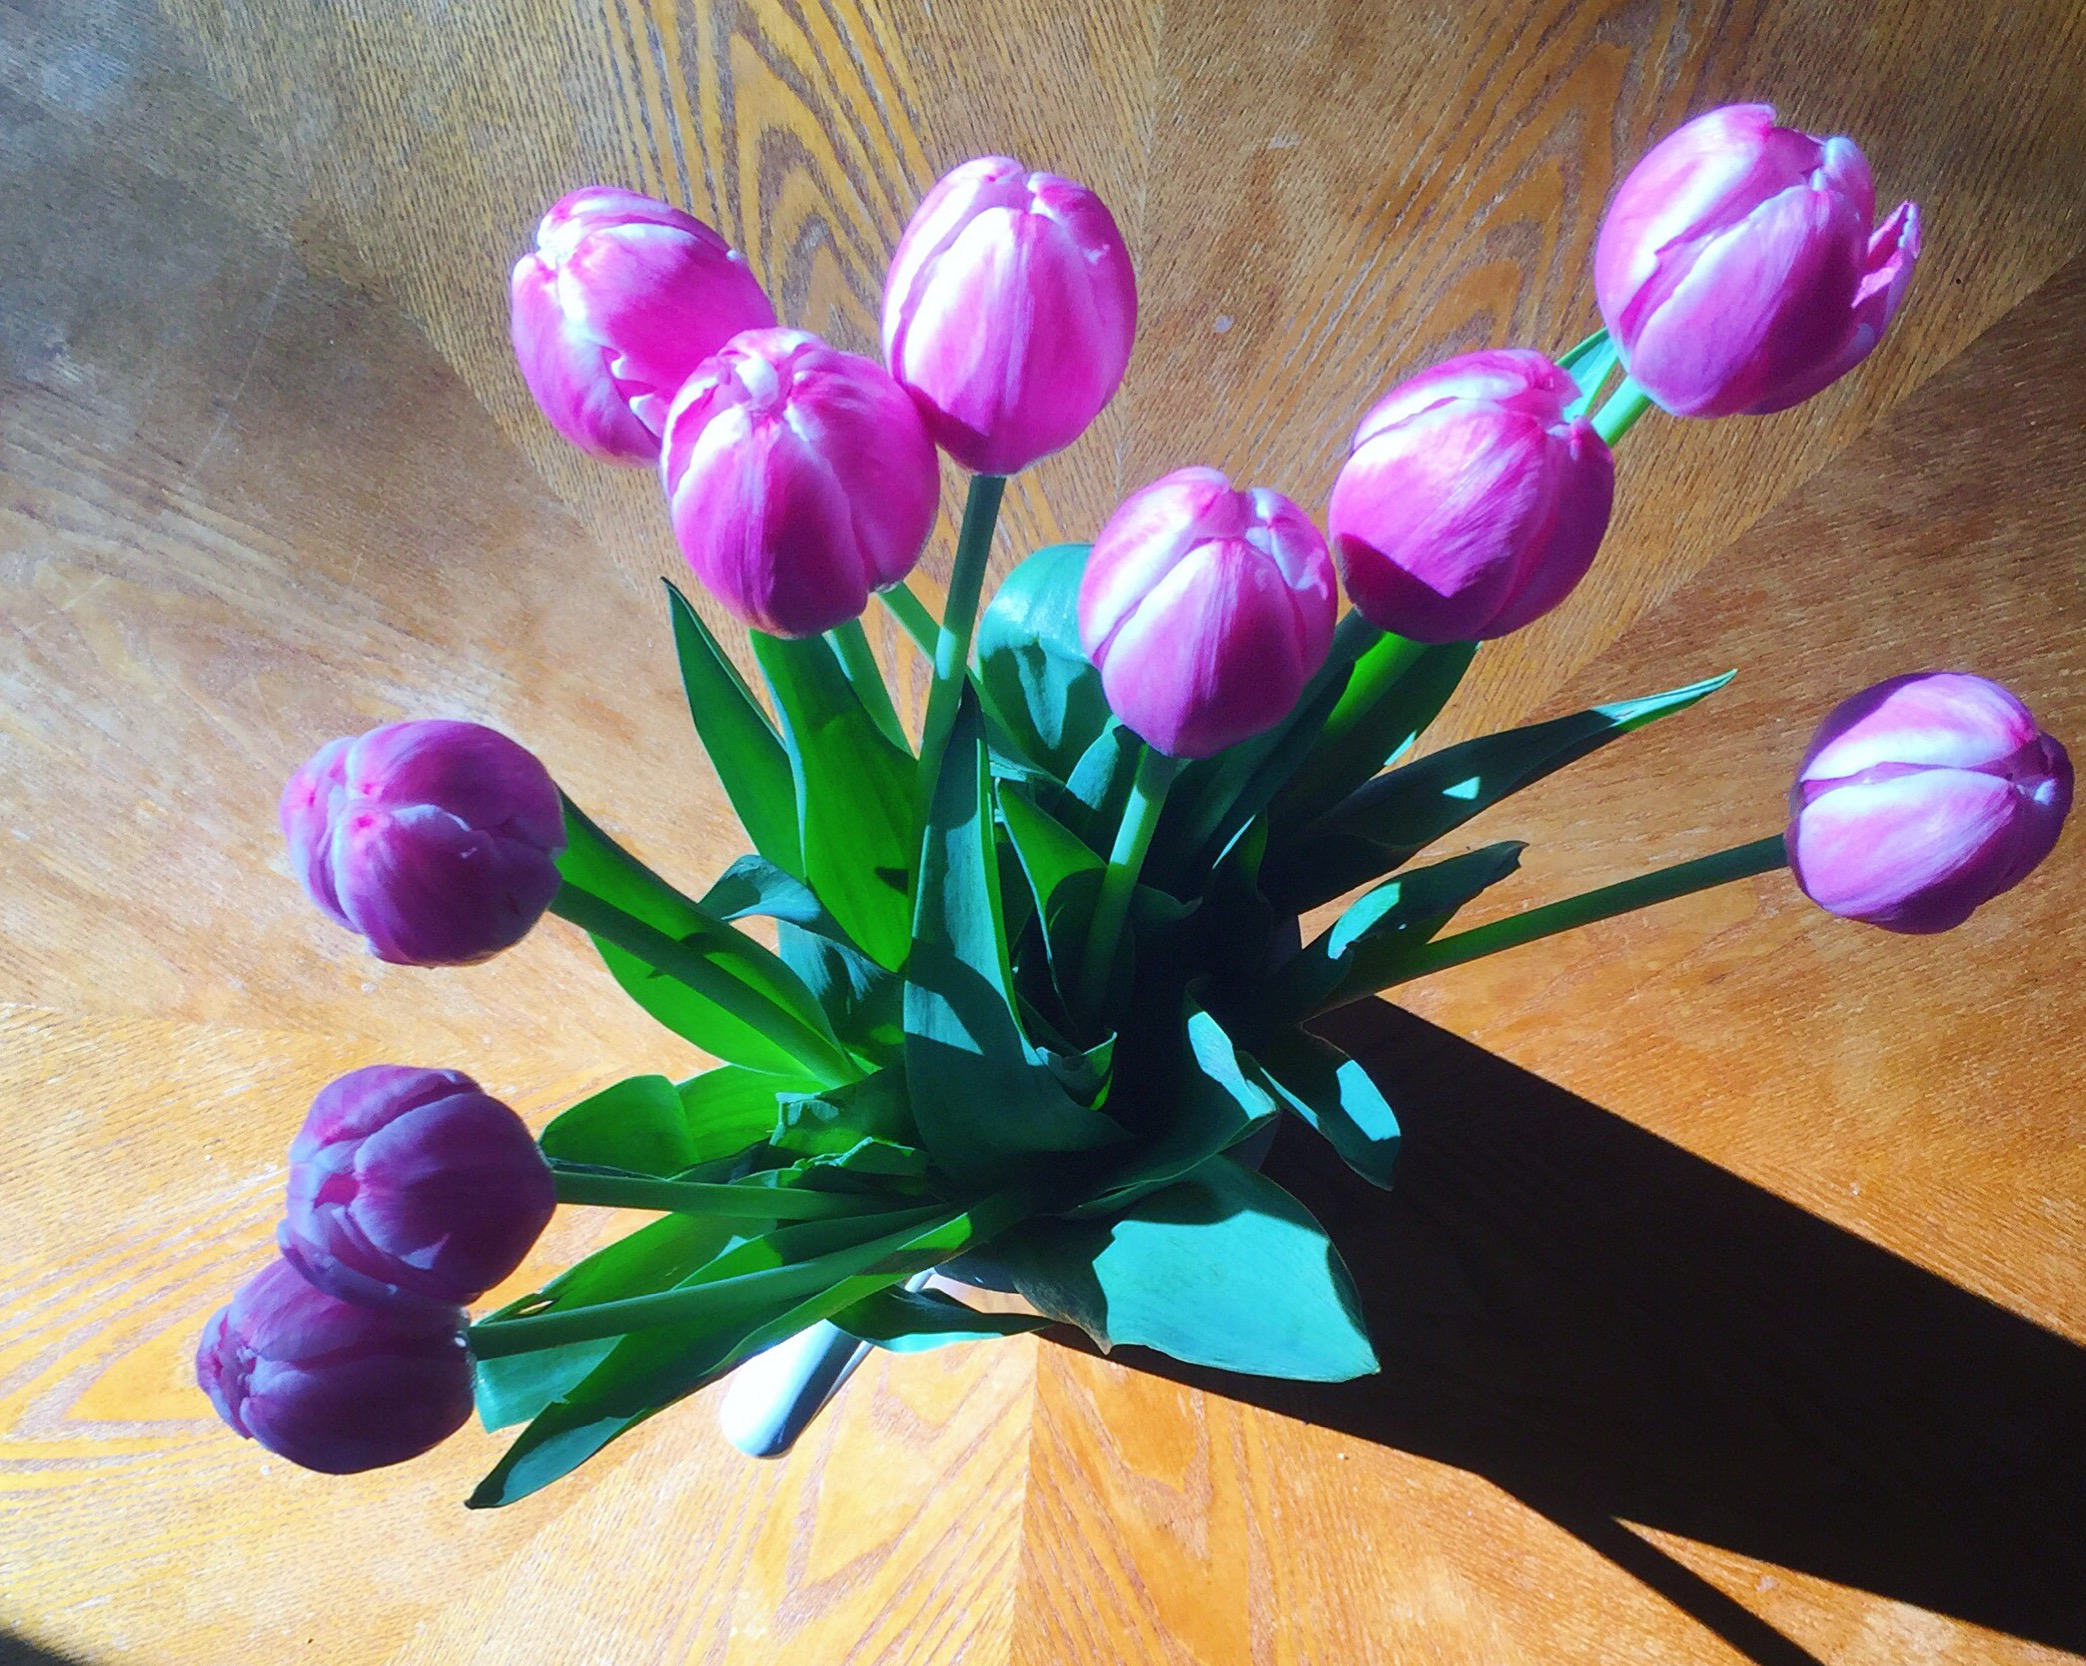 purple-tulips-in-morning-sun-light-may